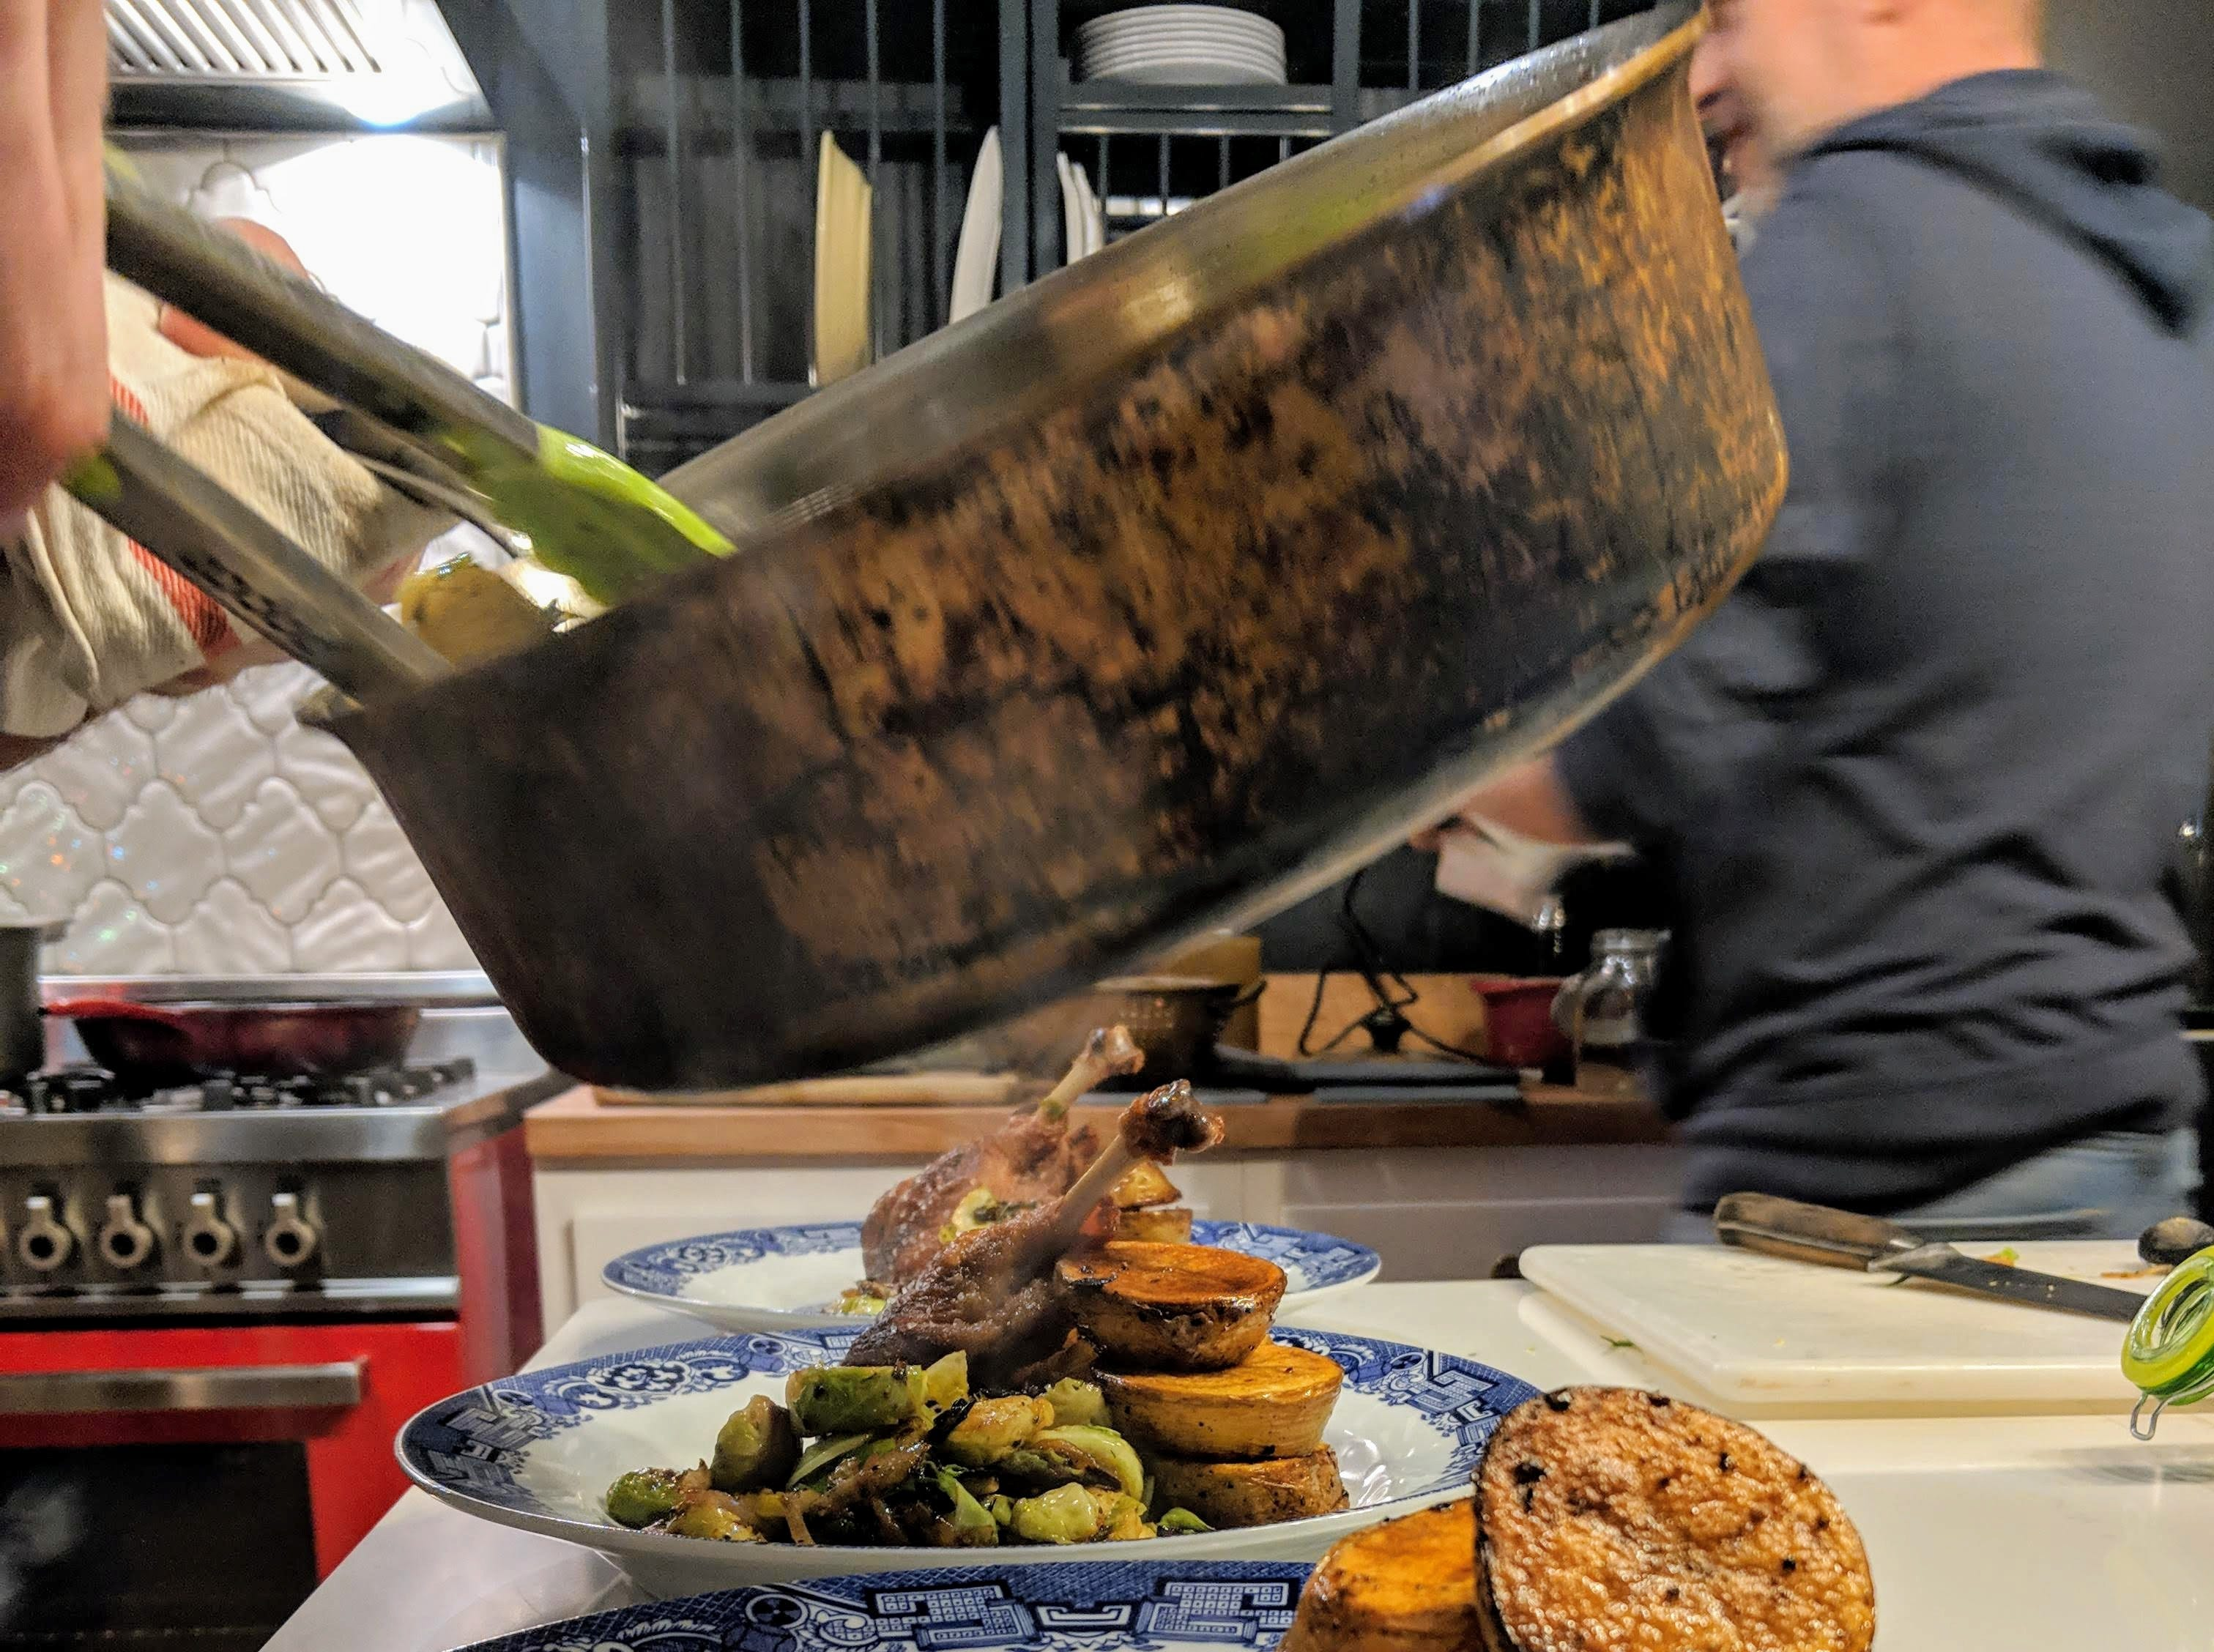 Louisville chef Michael Crouch plates his duck confit and Brussels sprout dish.